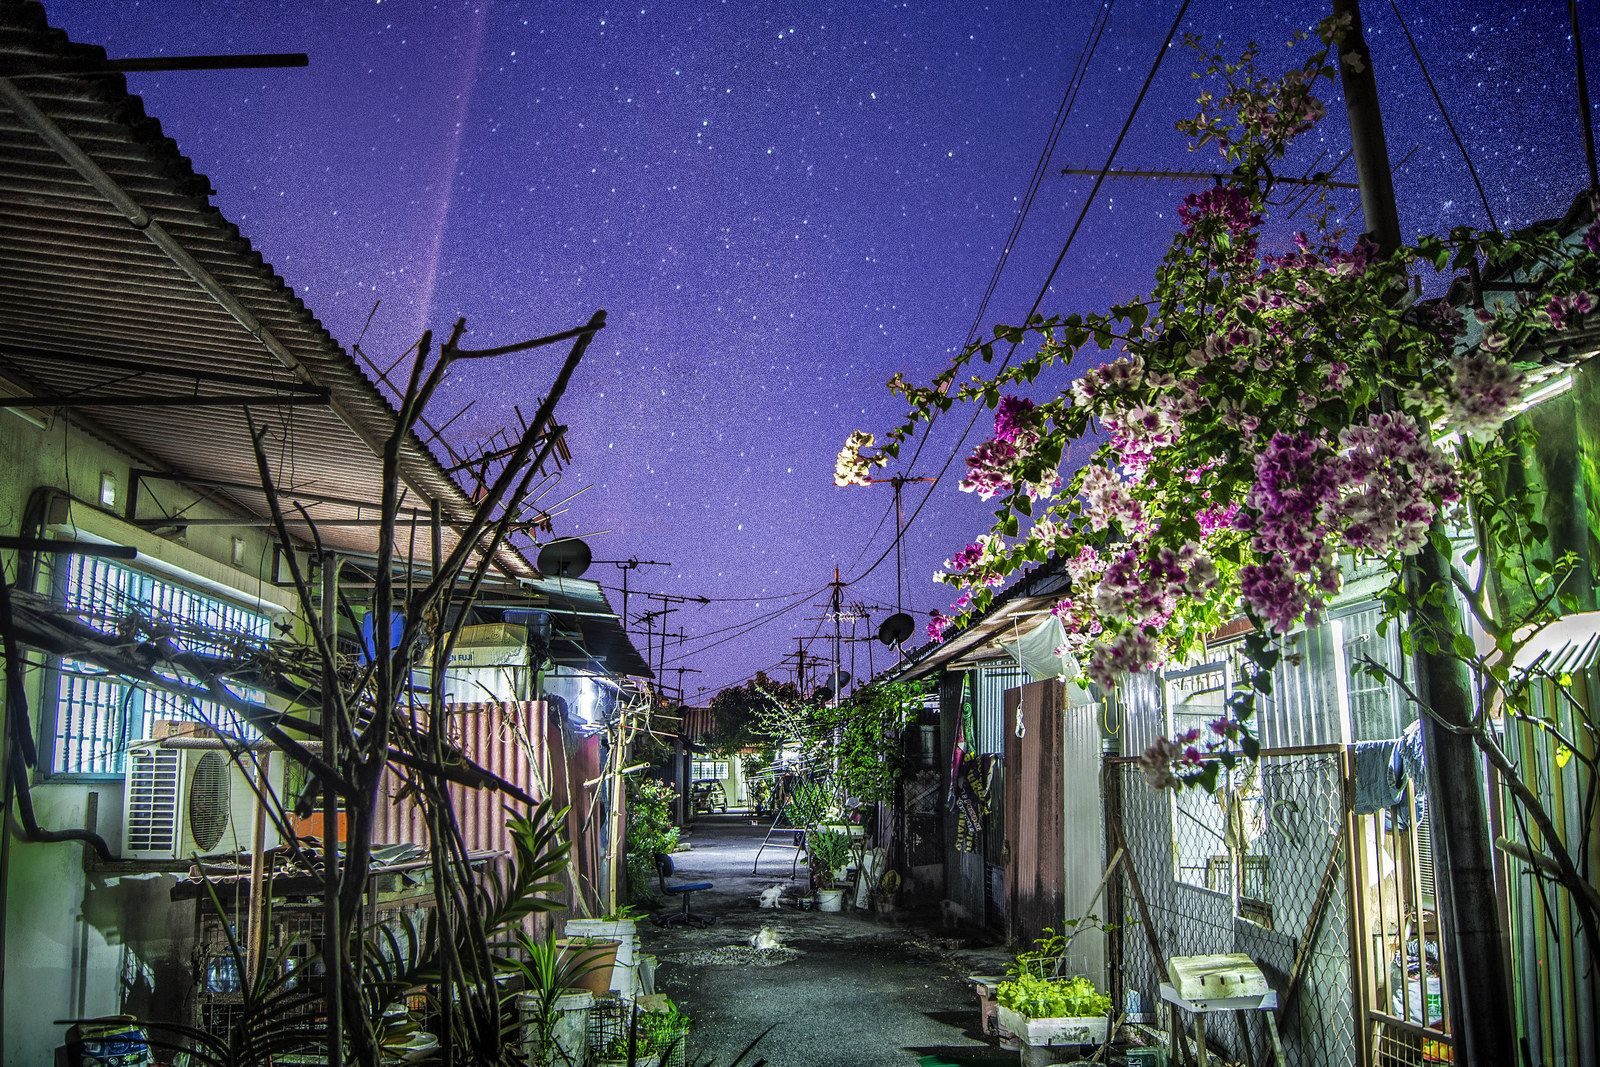 """Yong Lin Tan, 19, Malaysia — """"Back alley"""" 